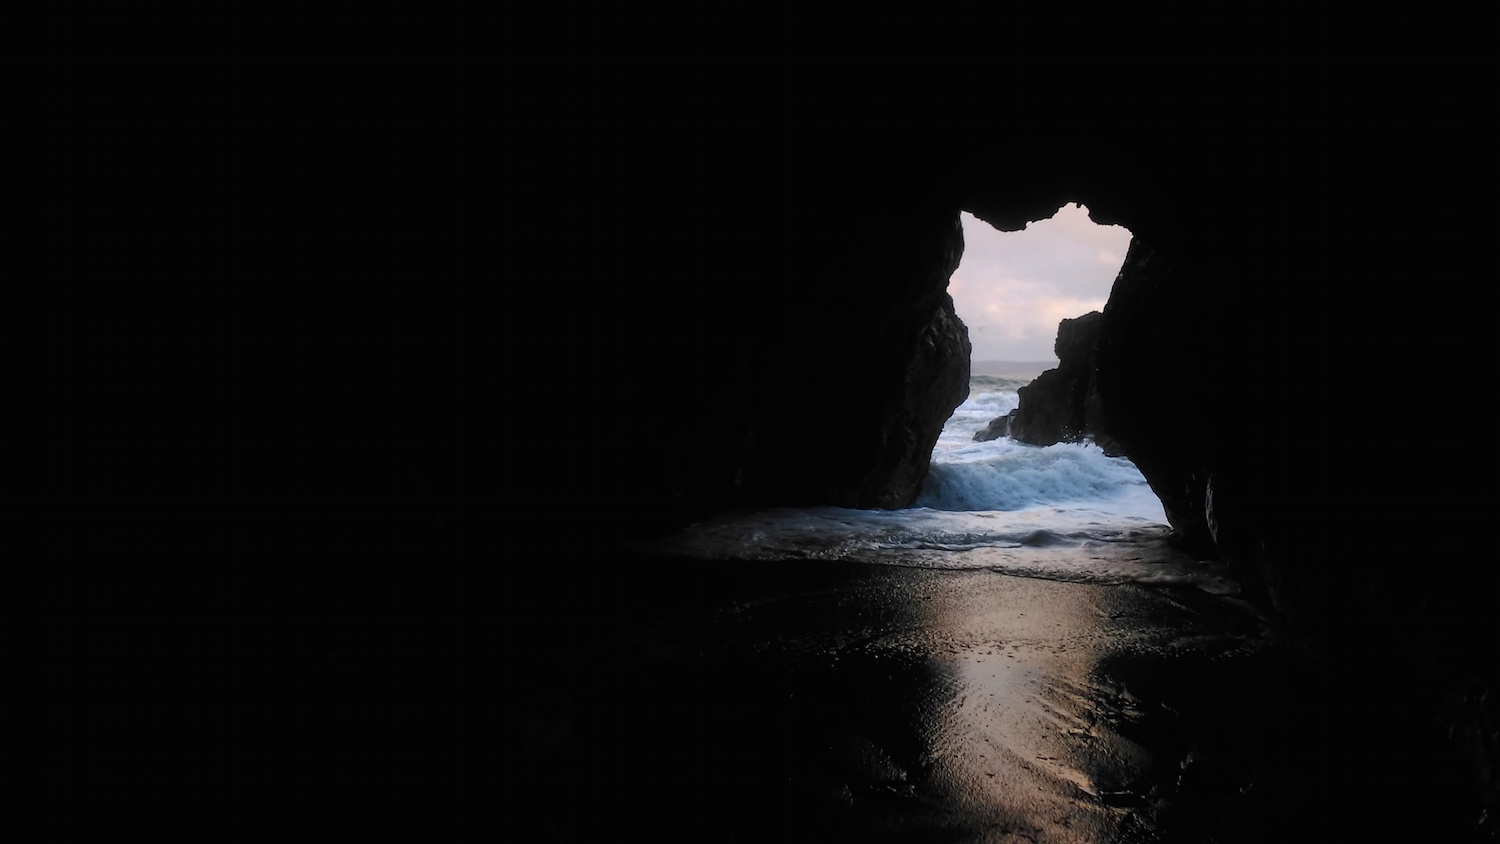 Entirely hollow aside from the dark, Photo by AlanJames Burns, Smugglers Cave, Portrane, Co Dublin